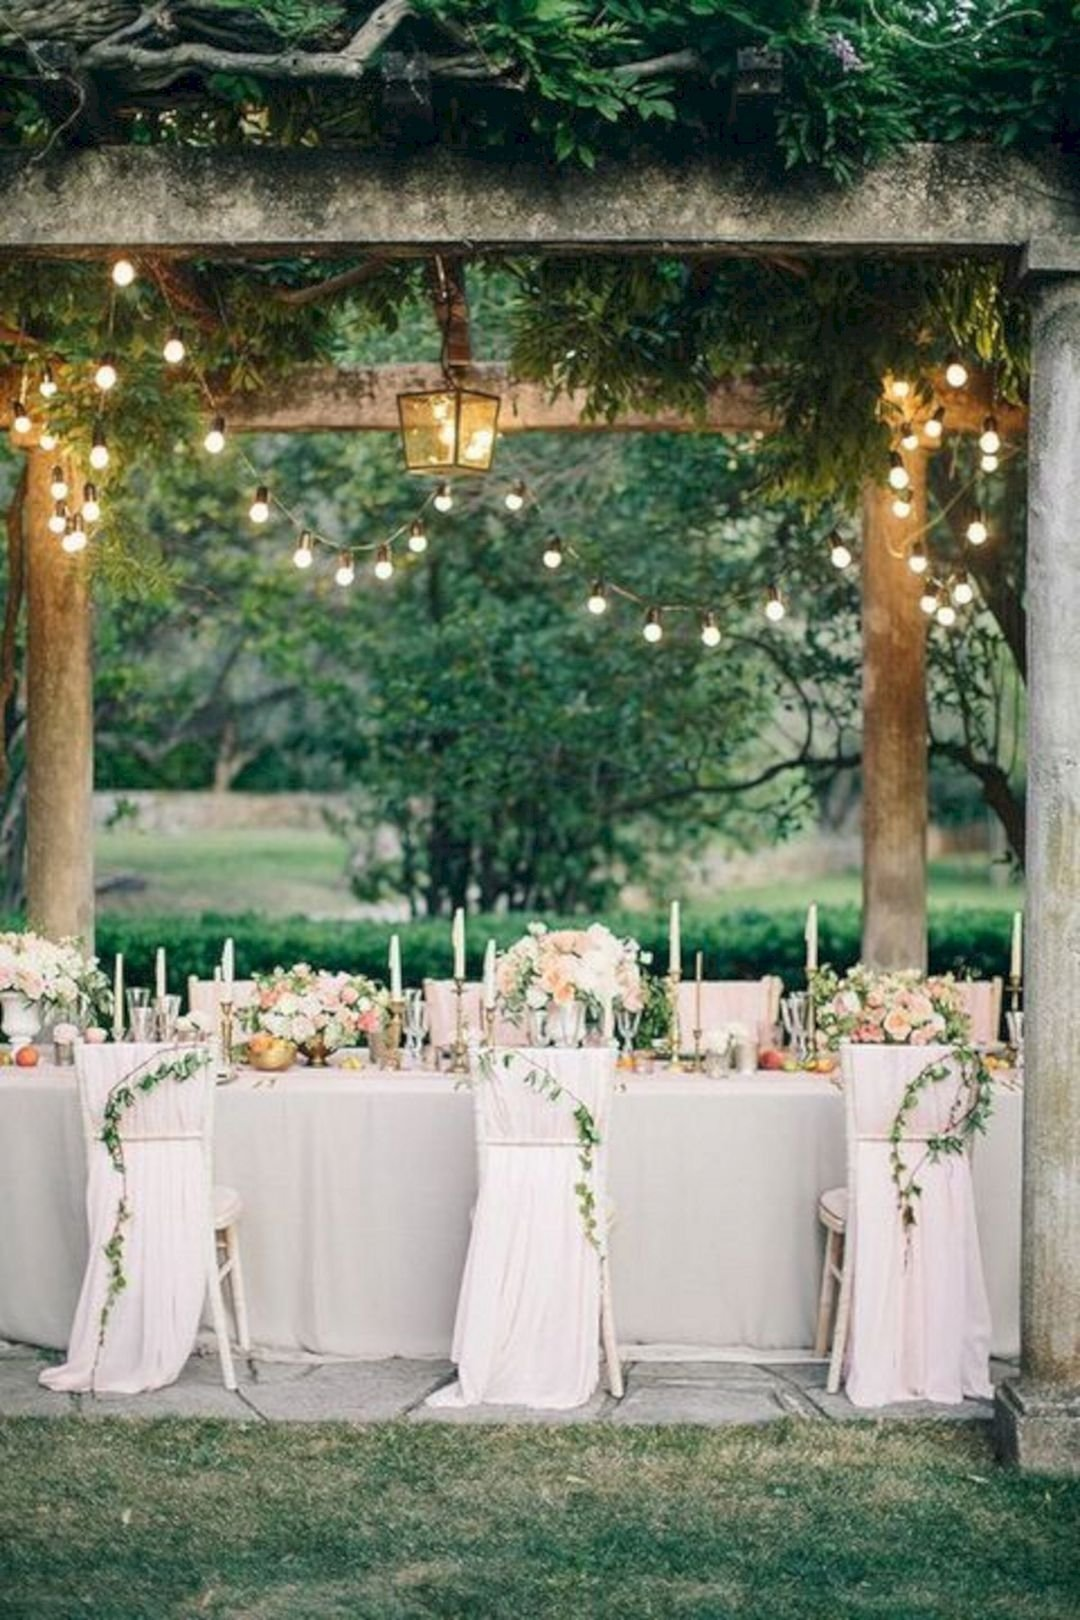 10 Stylish Outside Wedding Ideas For Summer summer outdoor wedding decorations ideas 120 oosile 50th anniversary